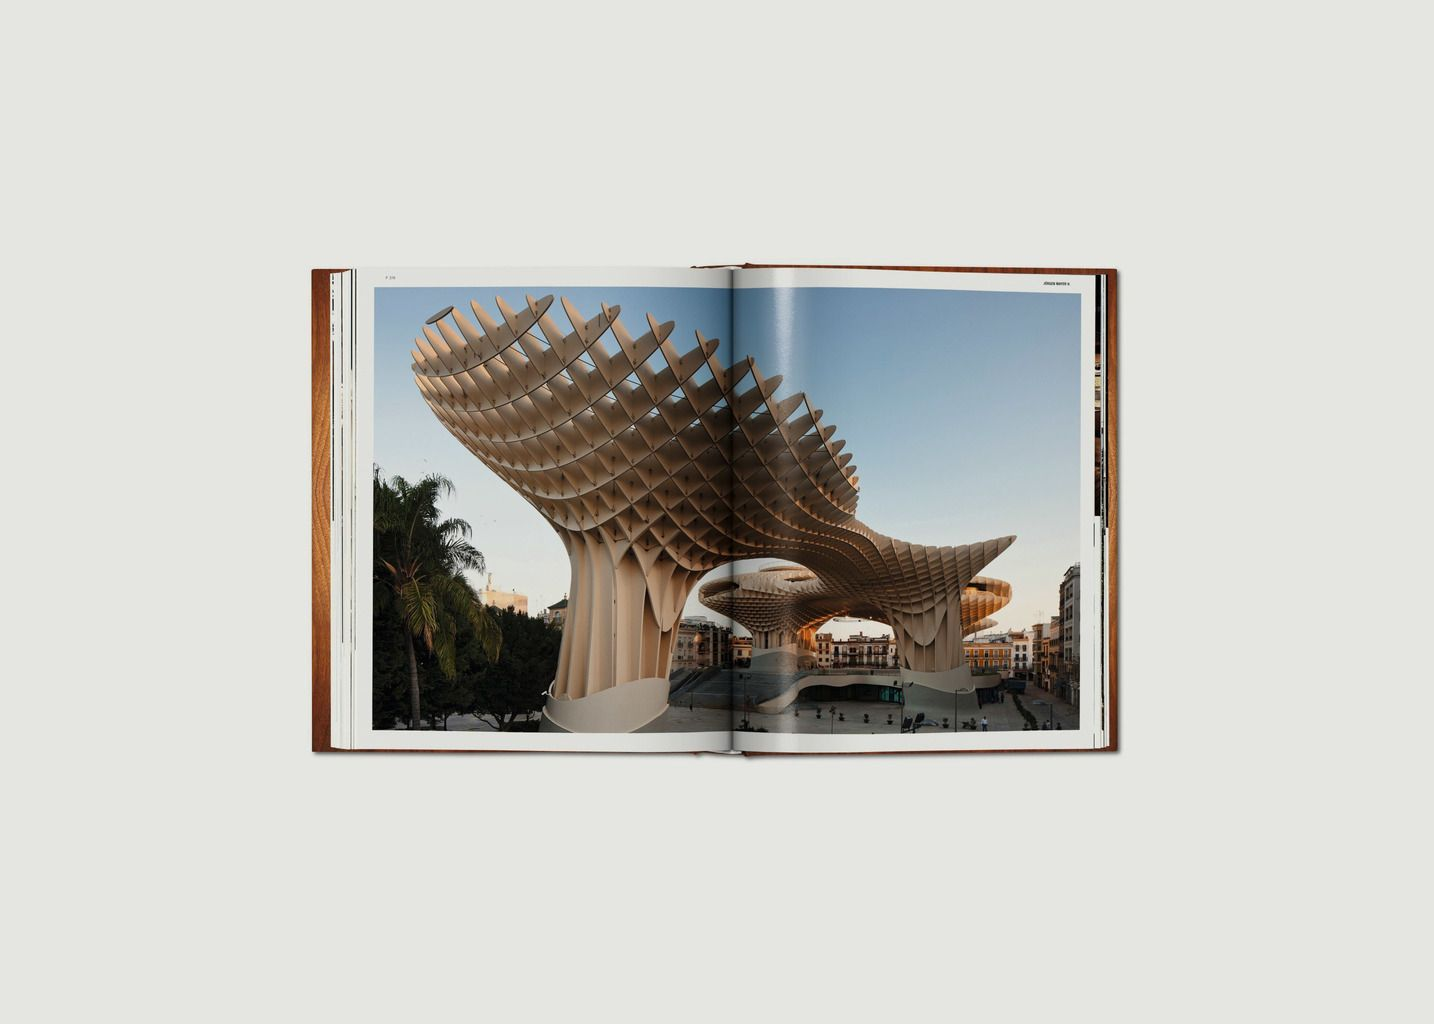 100 Contemporary Wood Buildings - Taschen